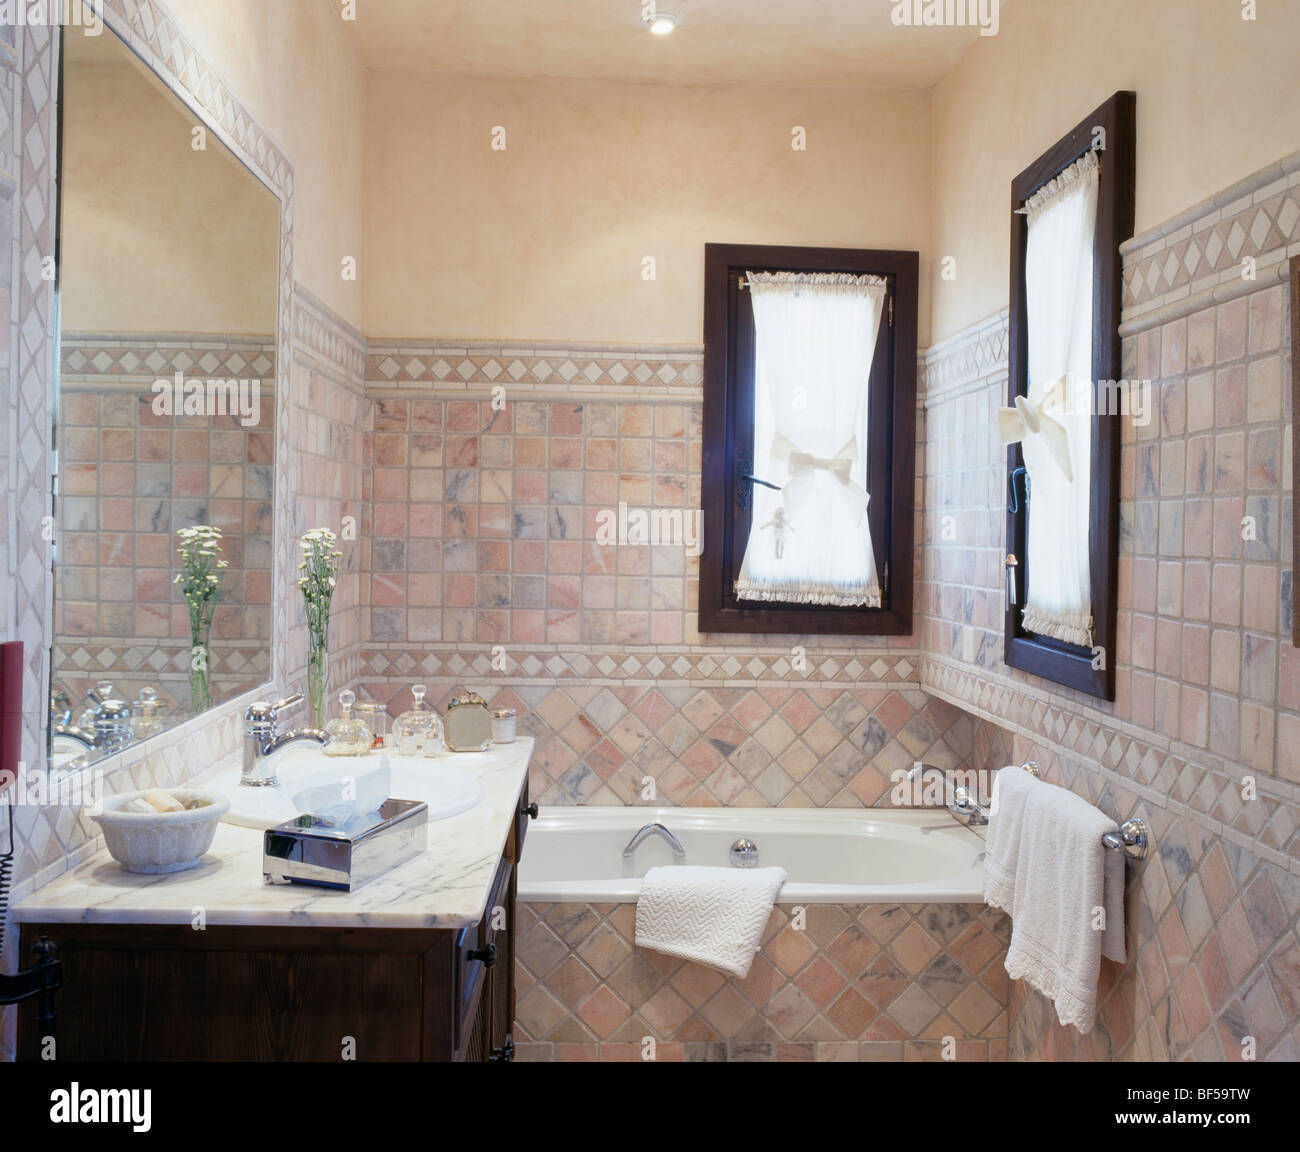 Small Spanish bathroom with tiled walls Stock Photo, Royalty Free ...